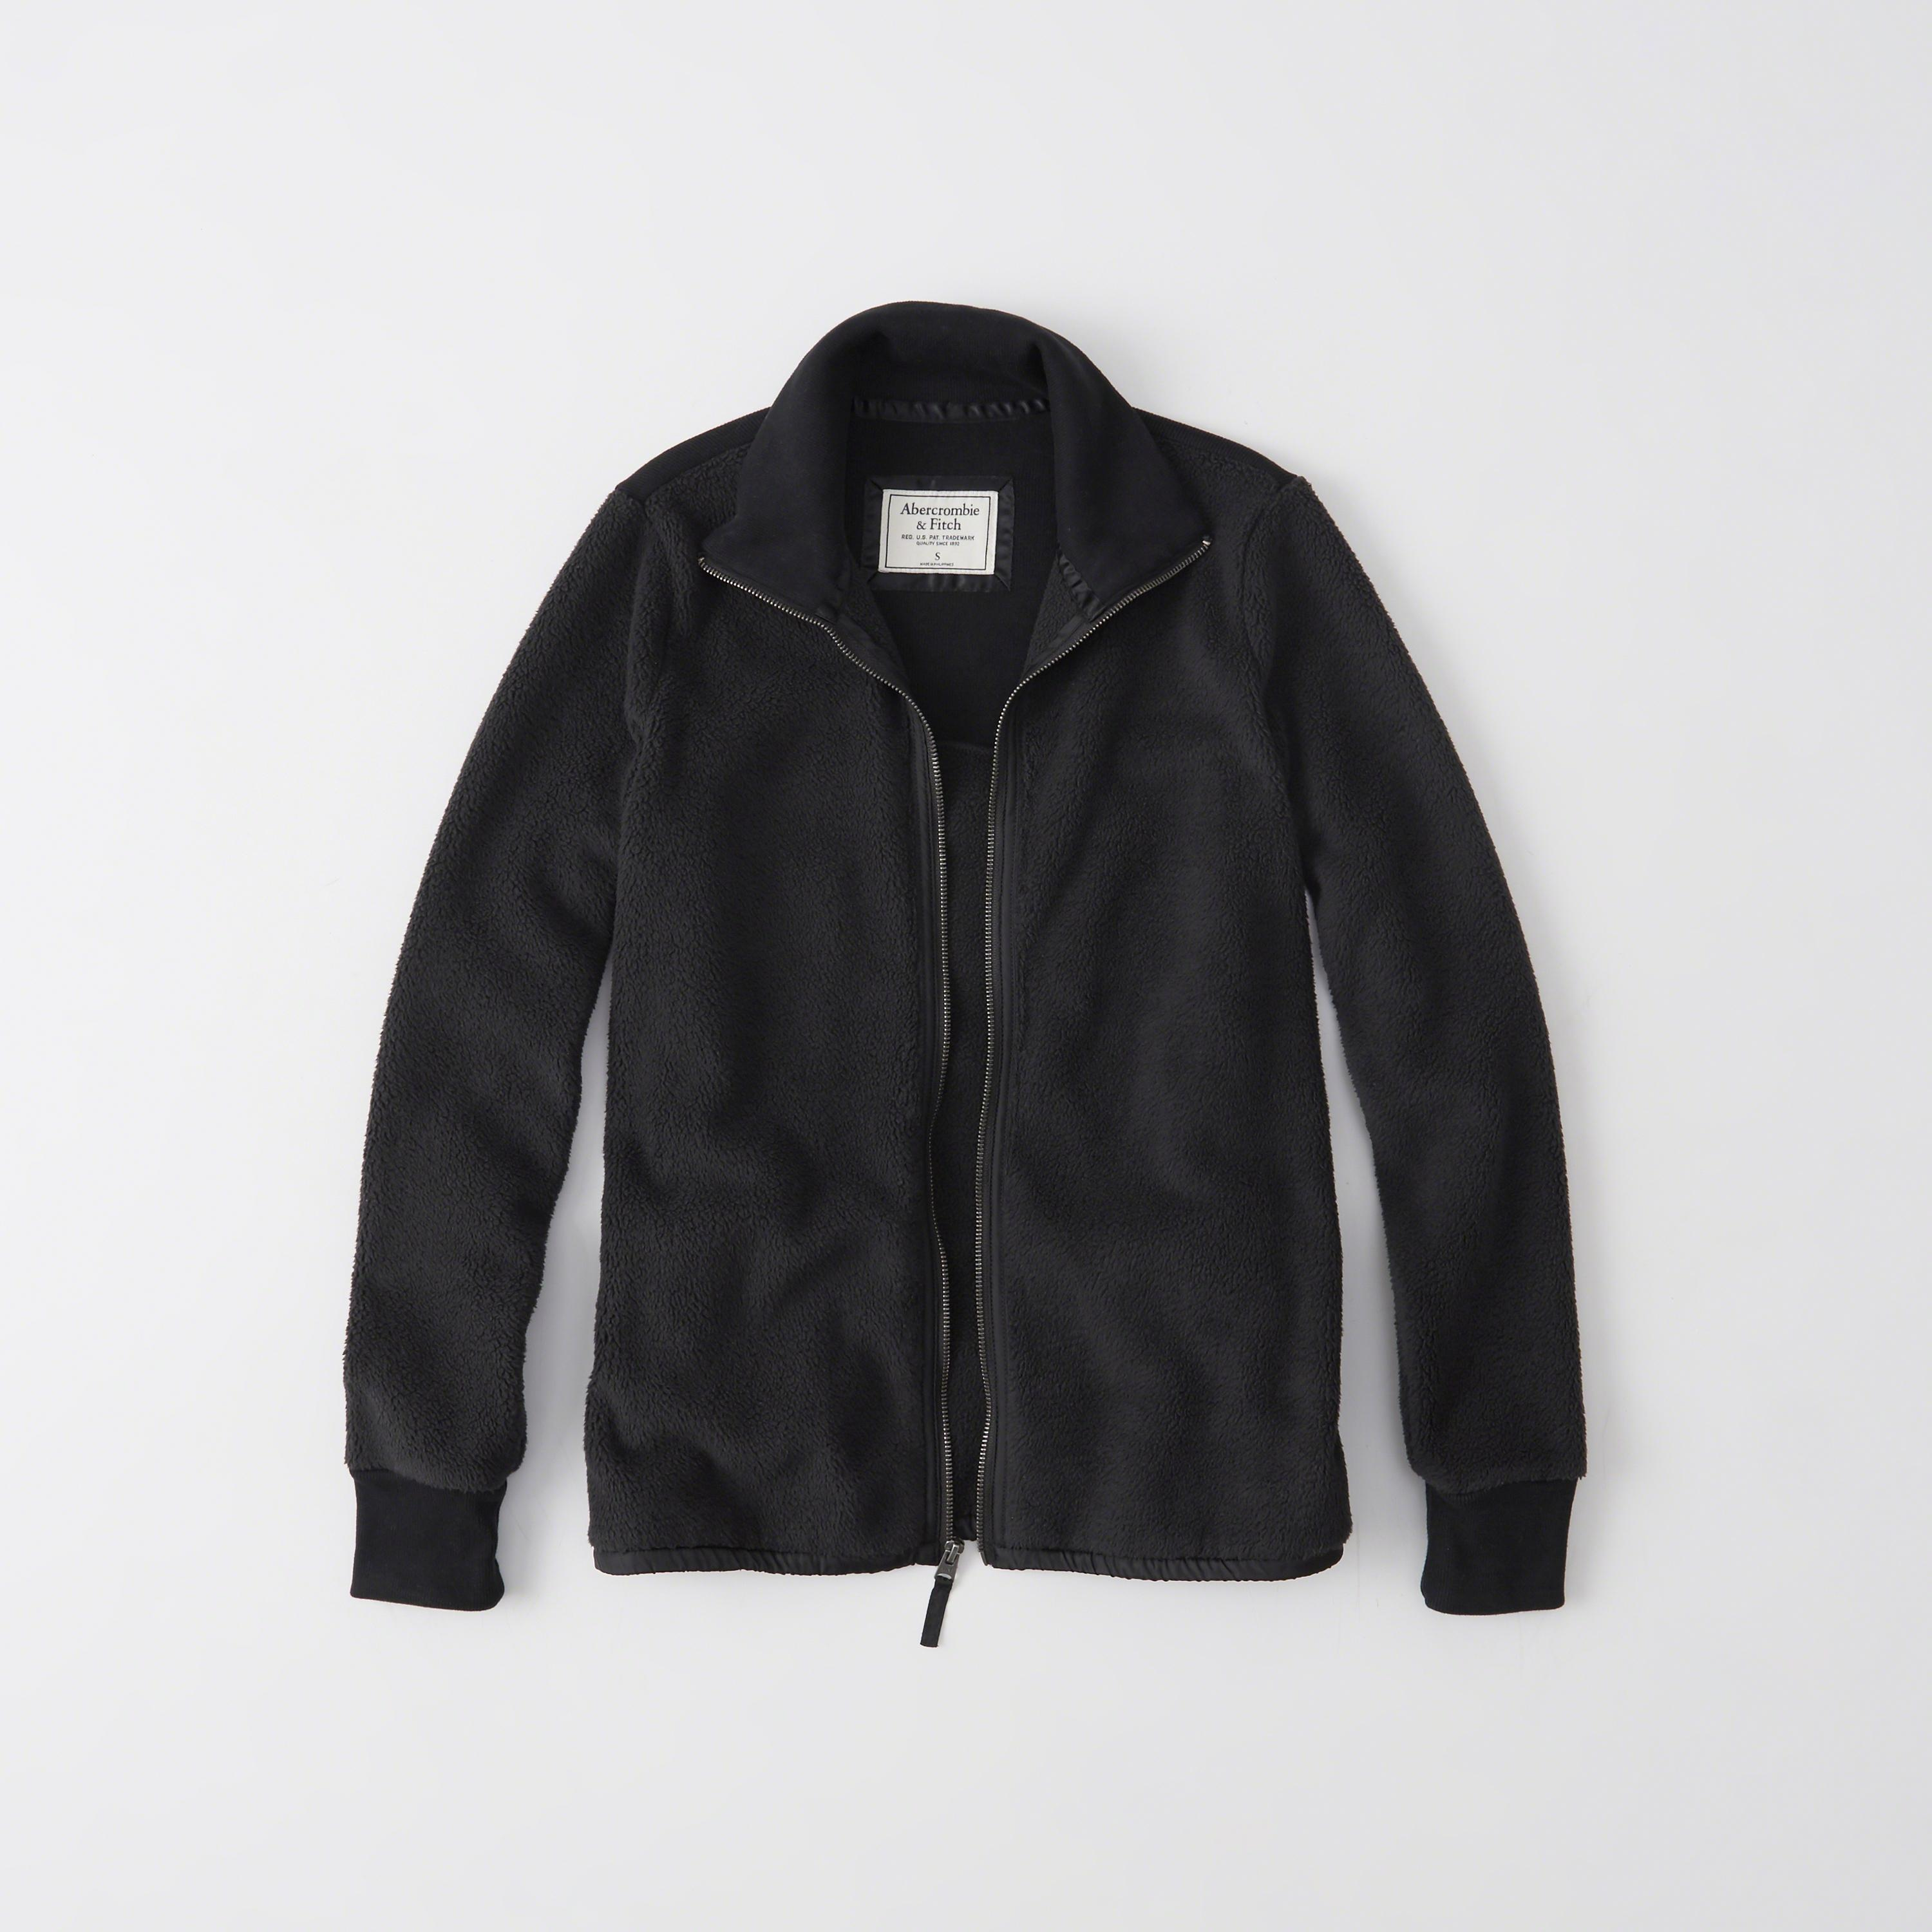 Abercrombie & Fitch Active Full-zip Sherpa Jacket In Black